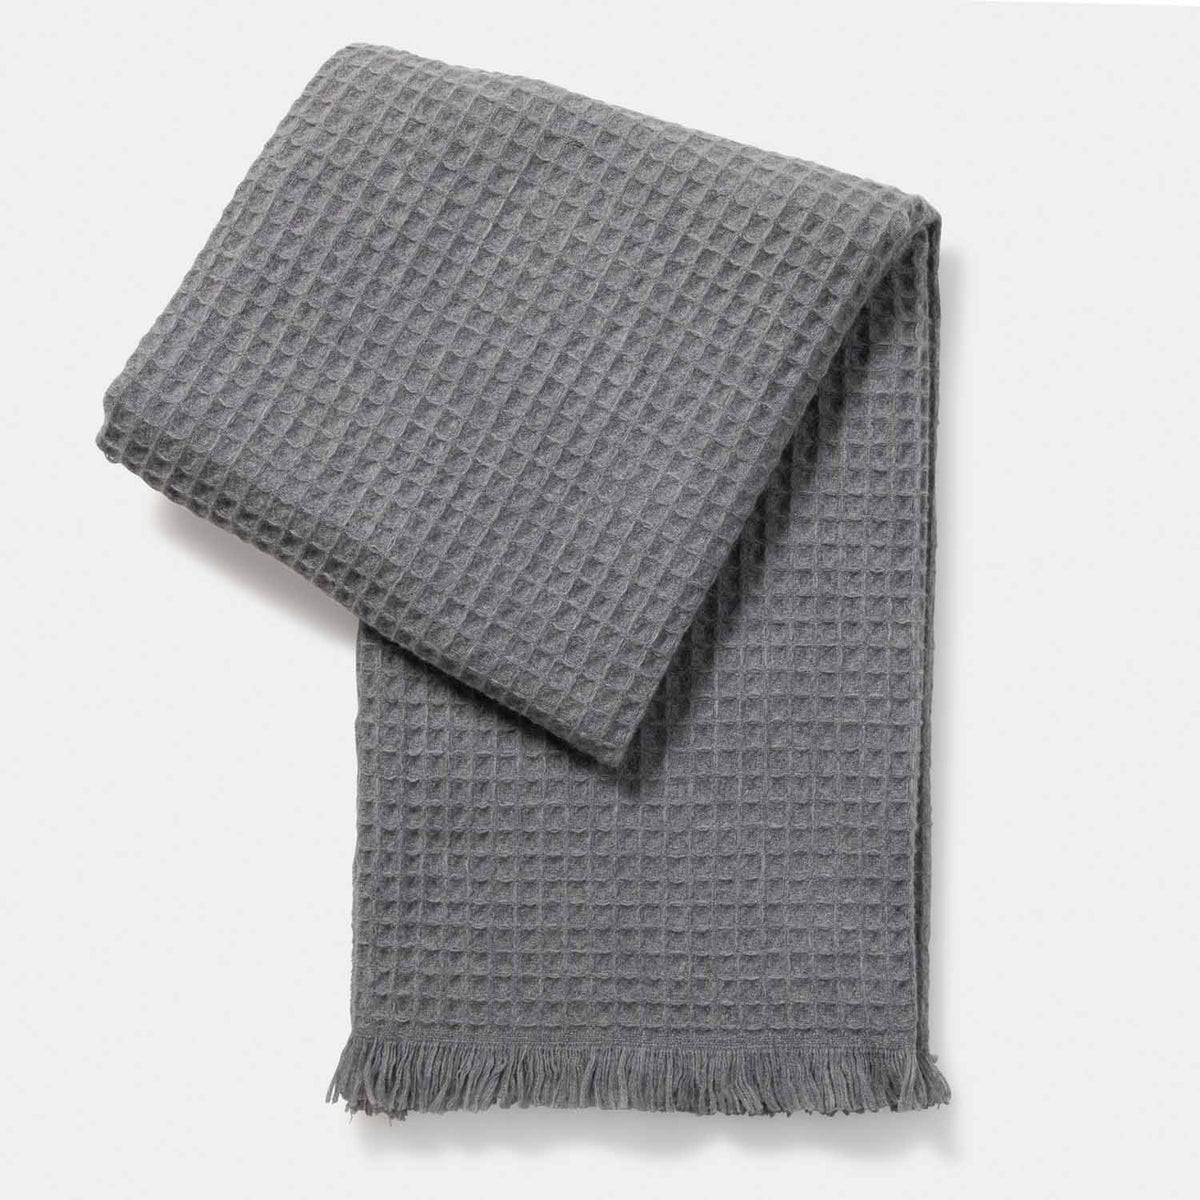 Thermal Stitch Woven Throw-Amicale Cashmere